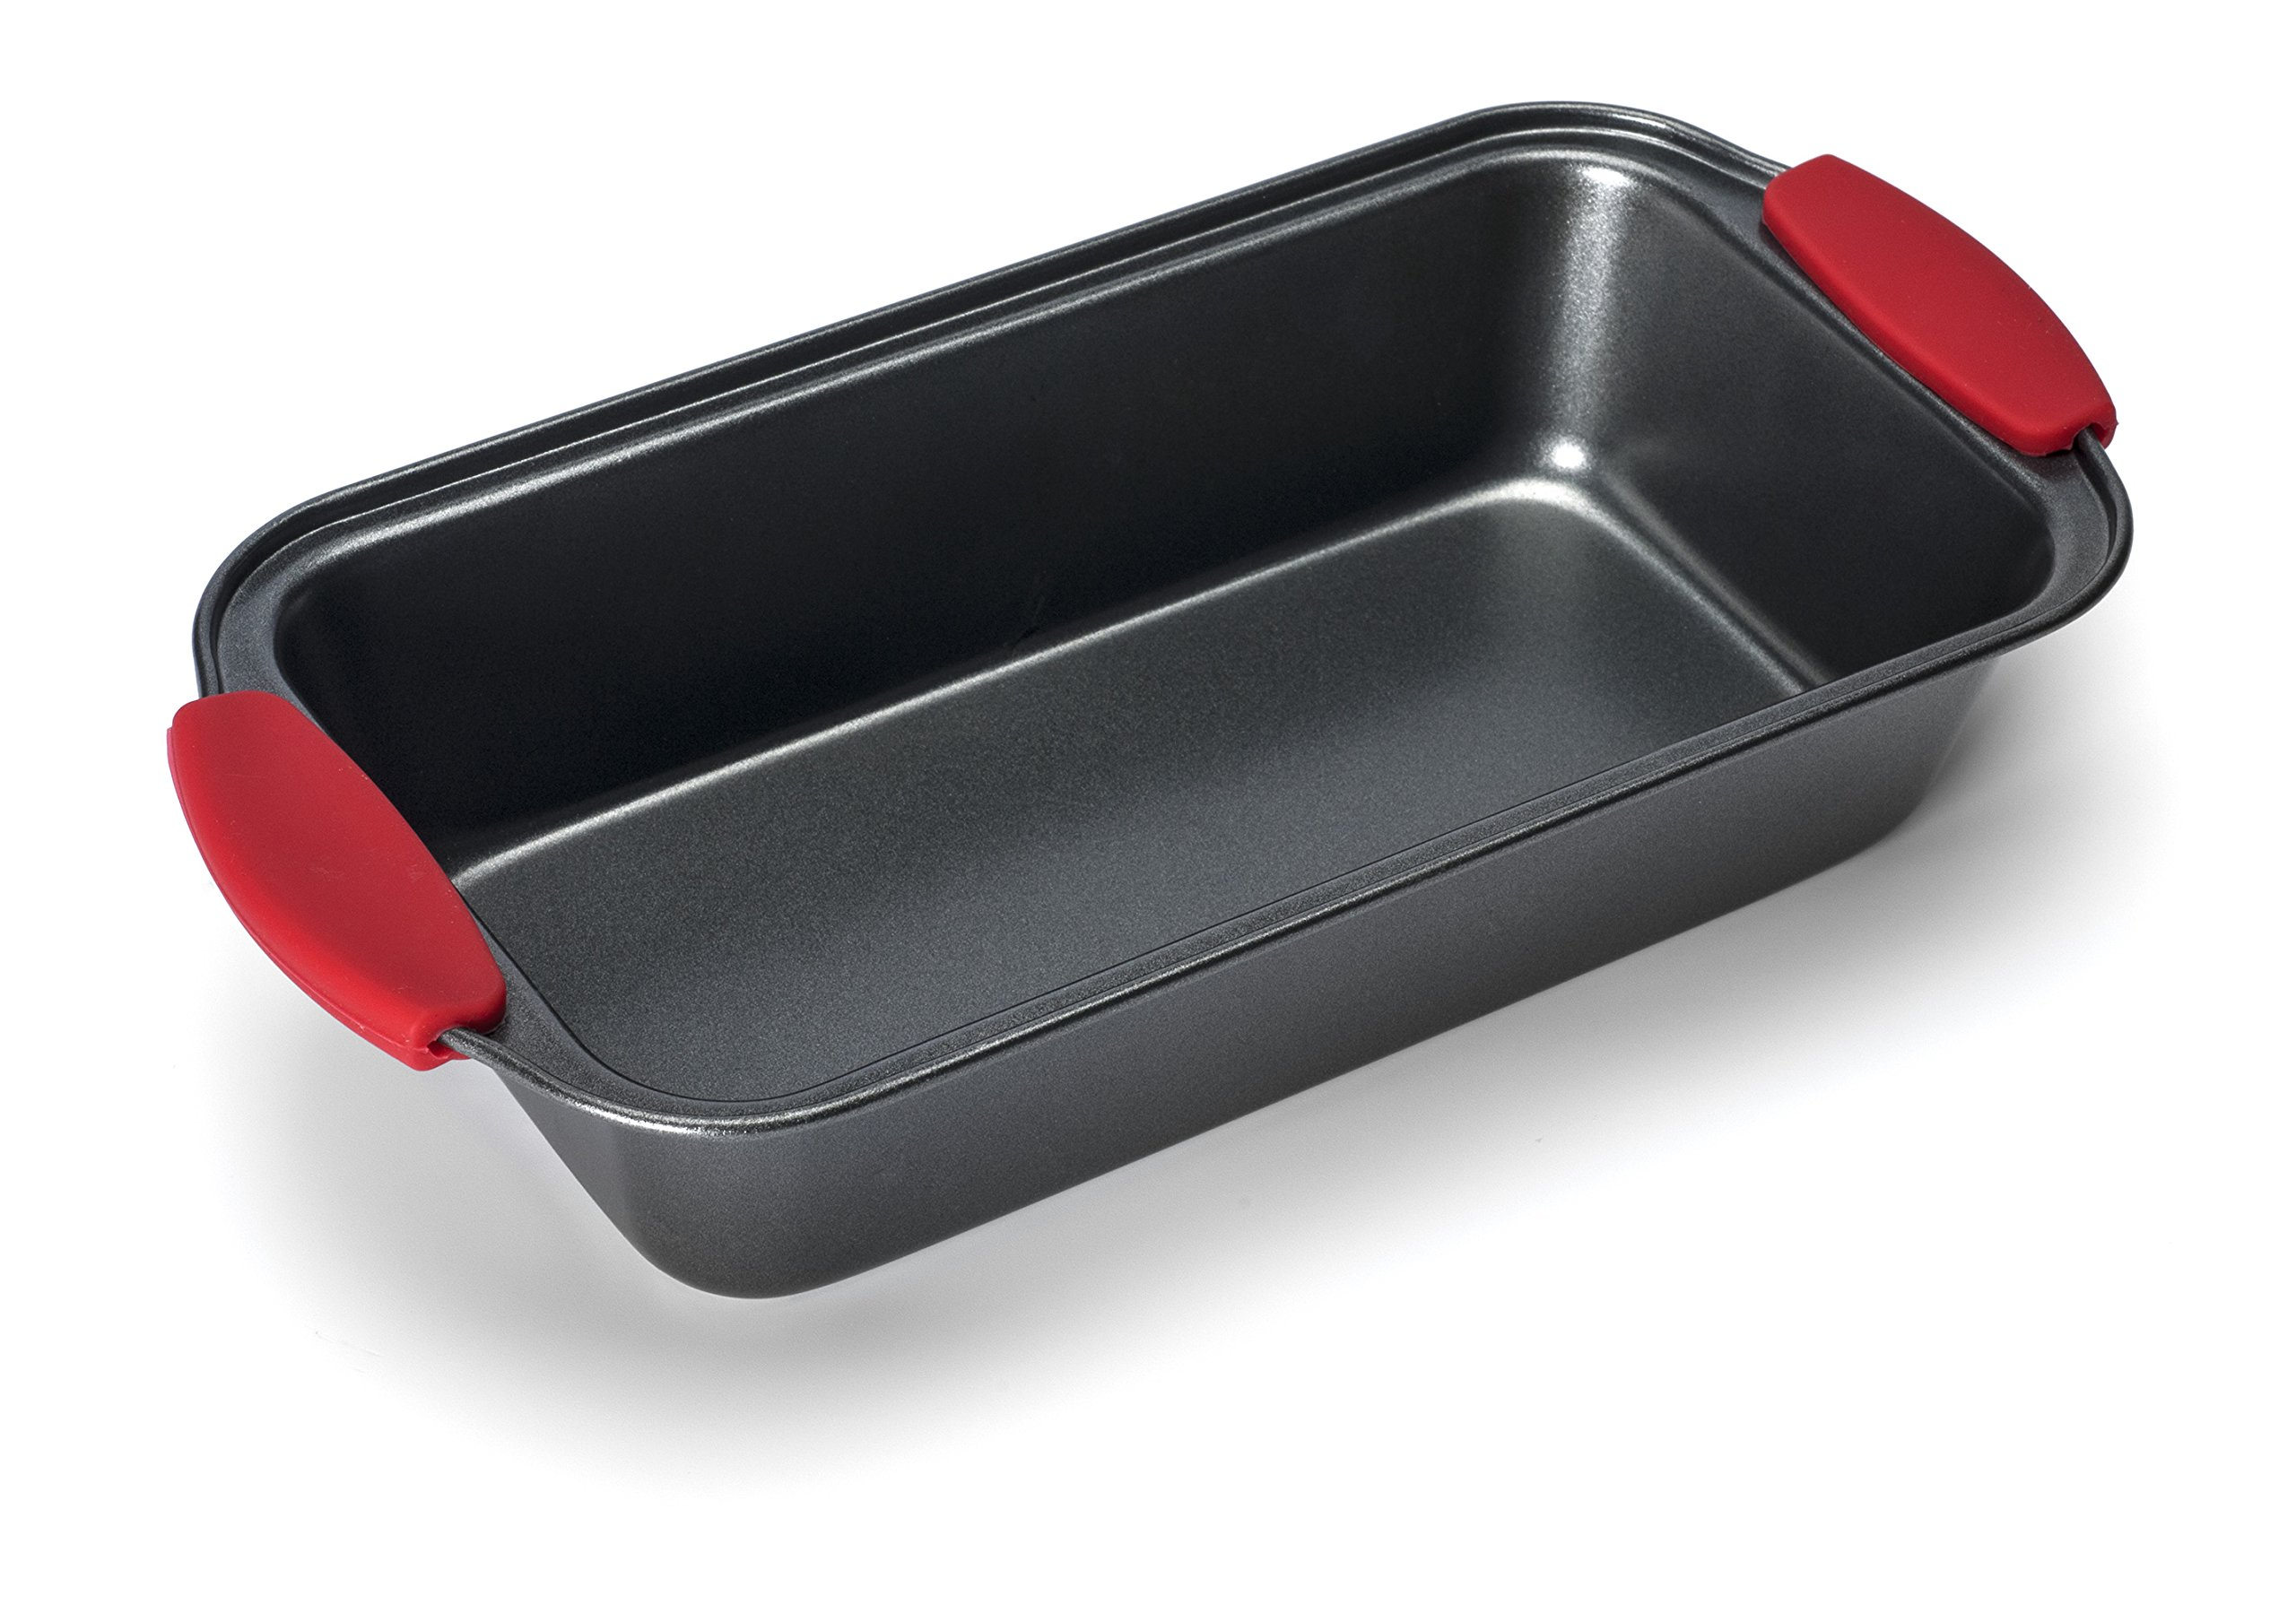 Elite Bakeware 3 Piece NonStick Bread Pan Set - Loaf Pans For Bread - Baking Pans - Bakeware Set